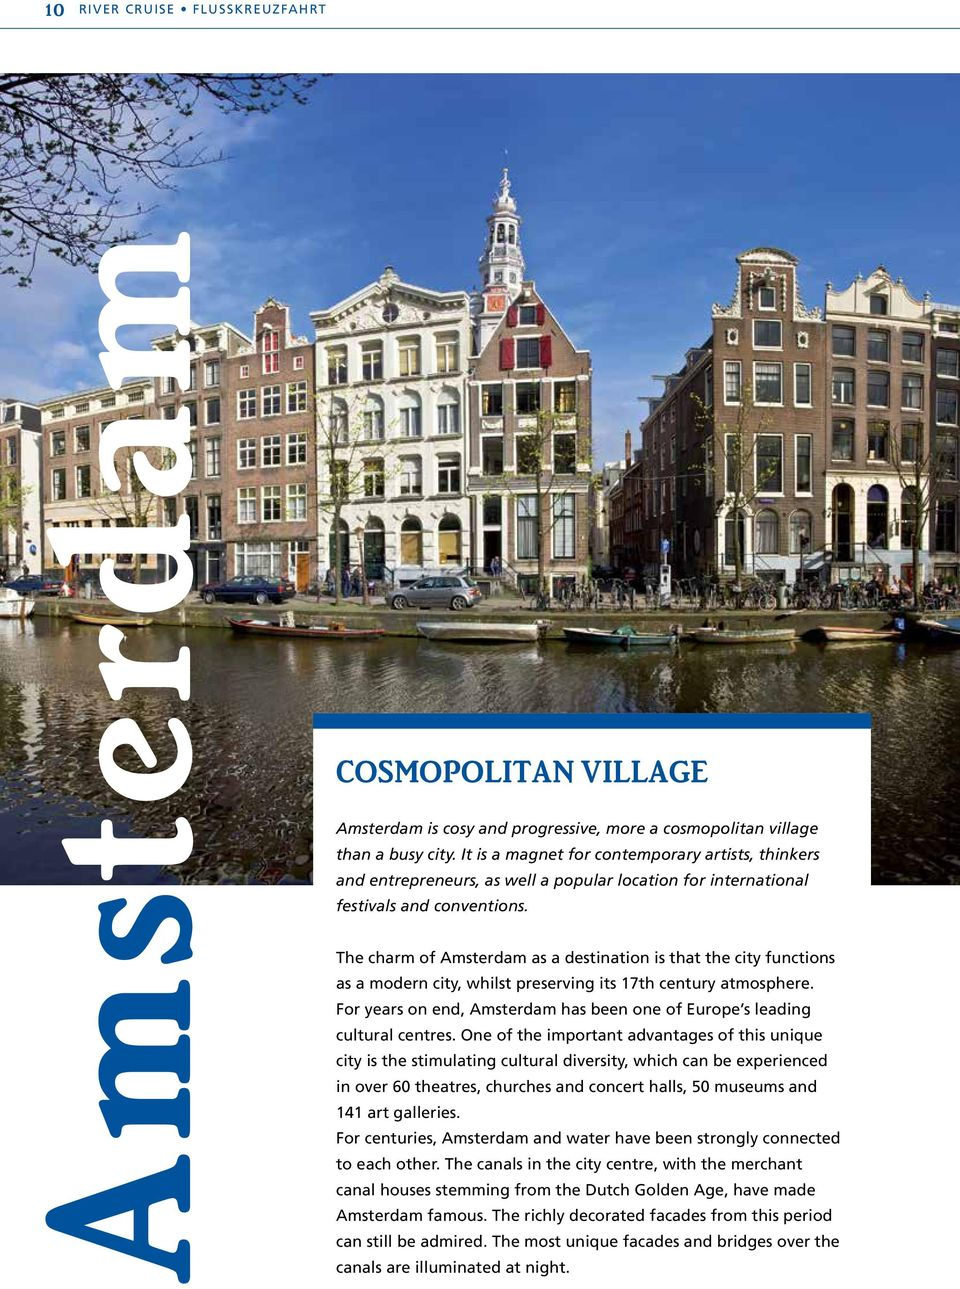 The charm of Amsterdam as a destination is that the city functions as a modern city, whilst preserving its 17th century atmosphere.